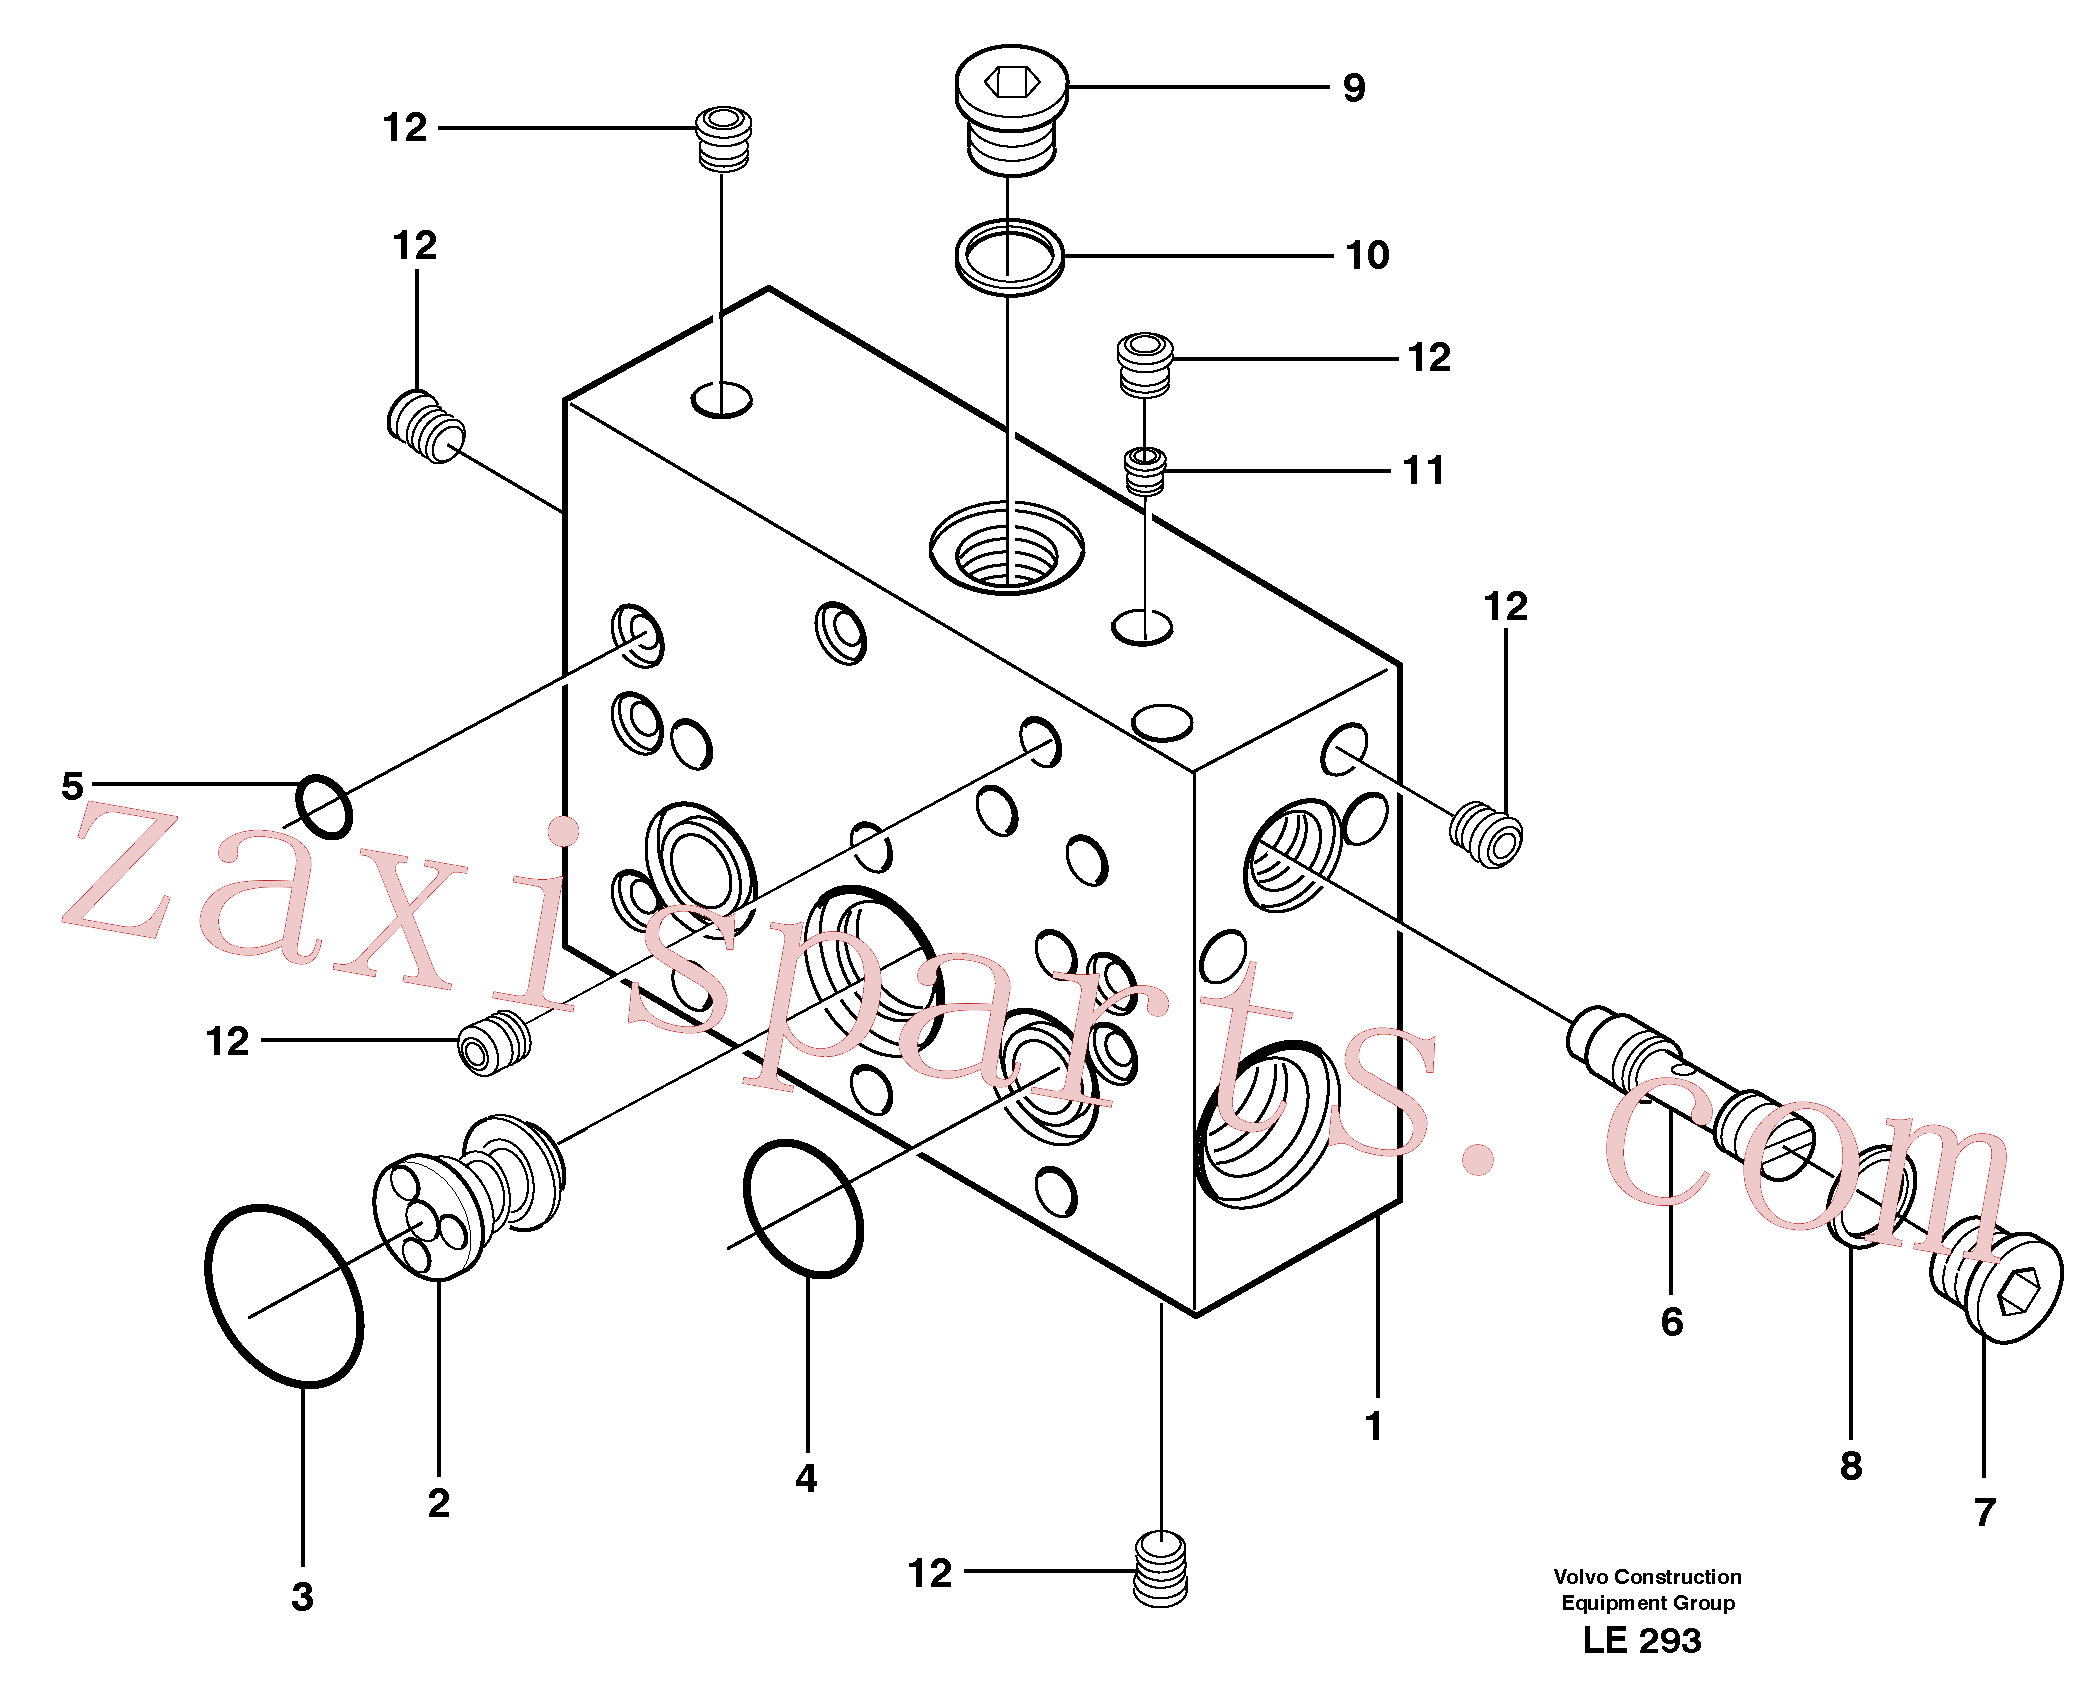 VOE11708202 for Volvo Intermediate housing(LE293 assembly)